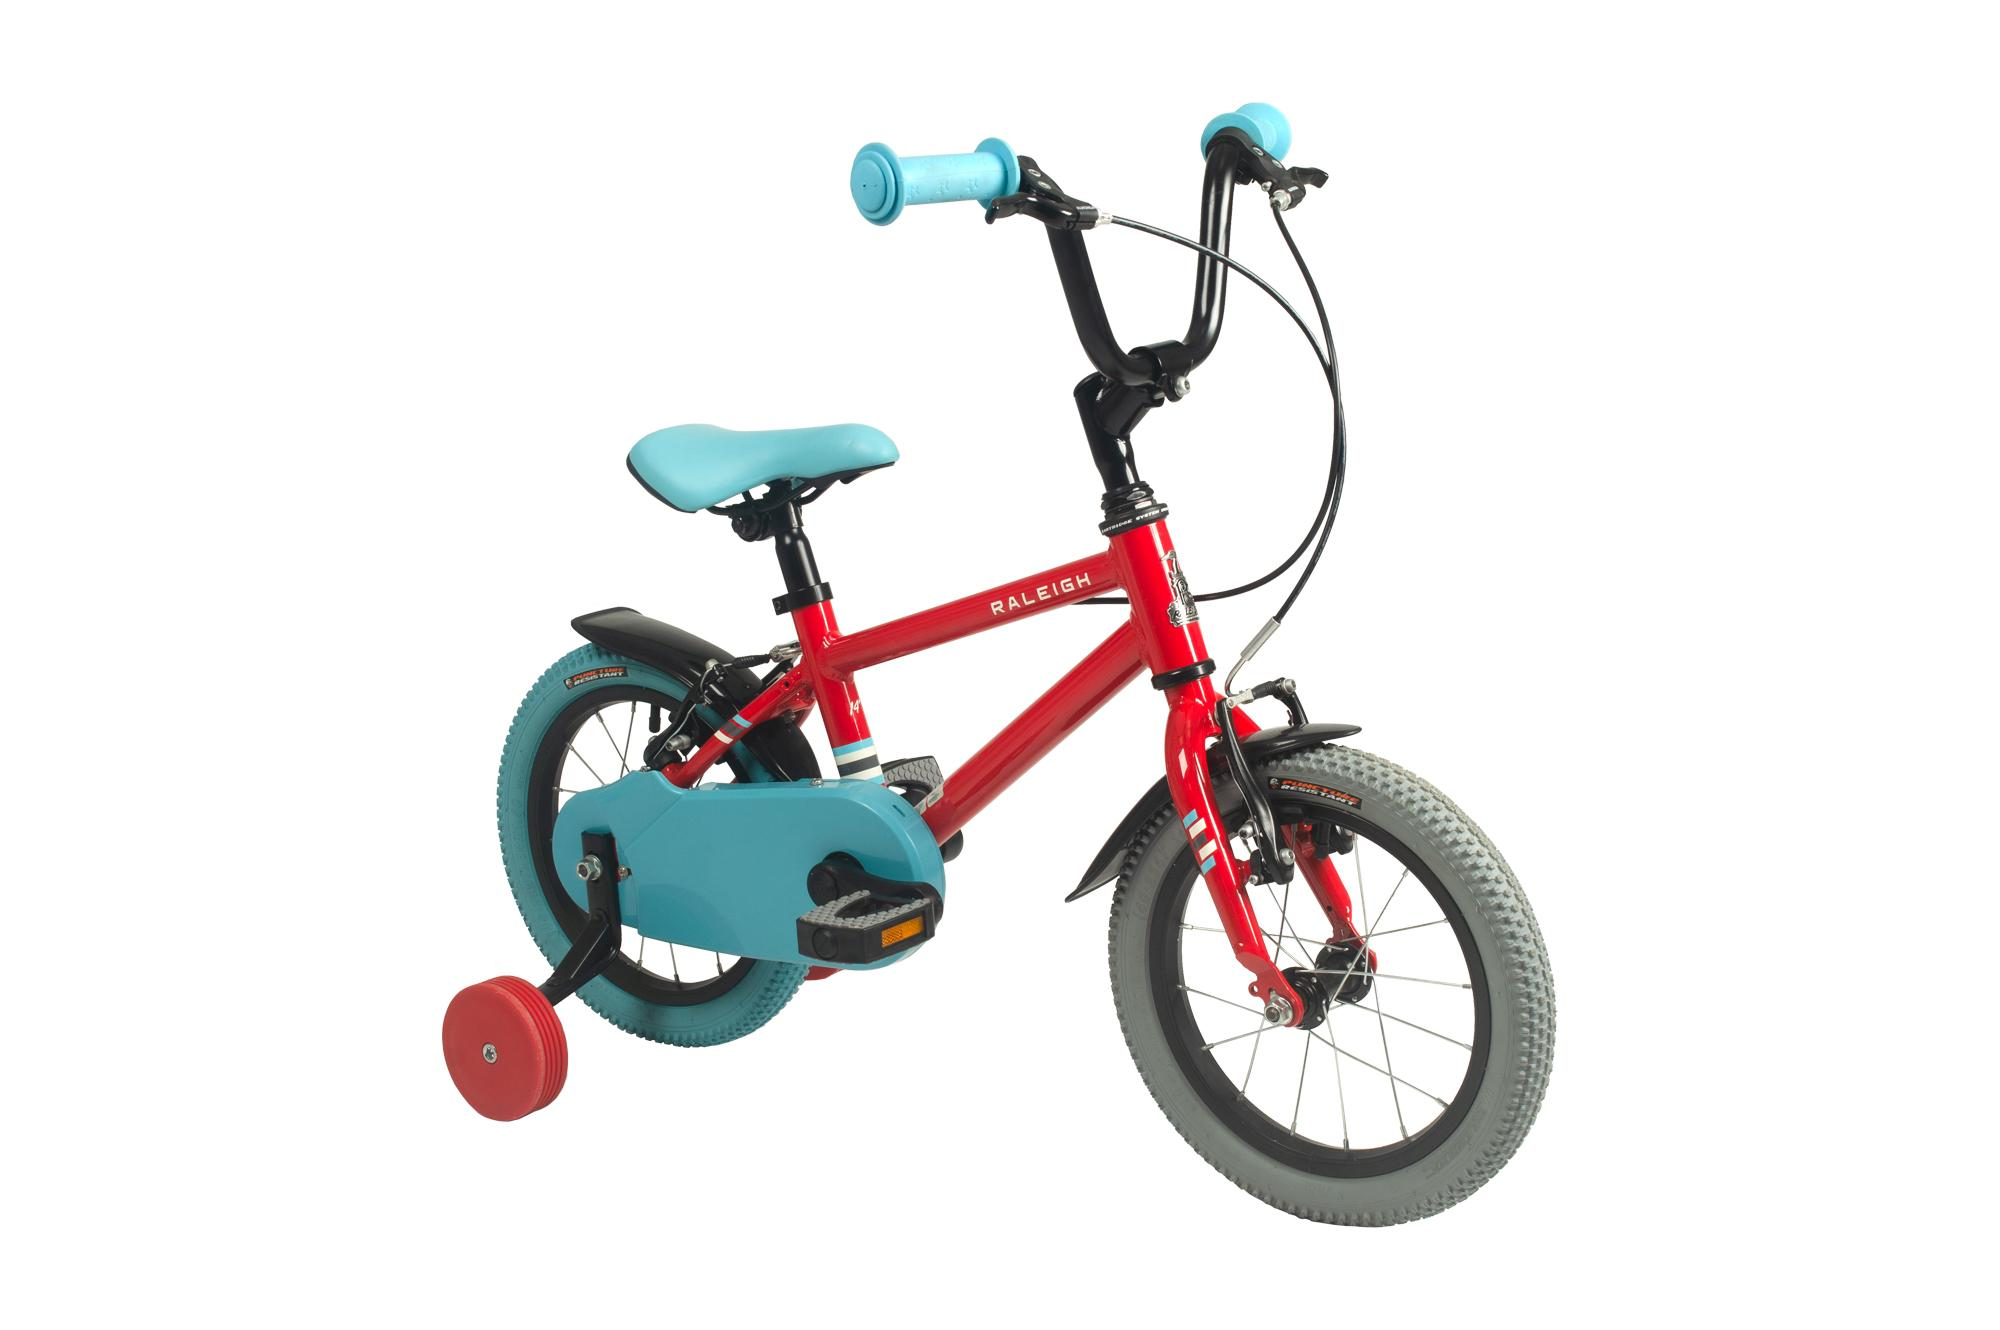 Front view of the Raleigh Pop 14 inch kids bike with stabilisers in red